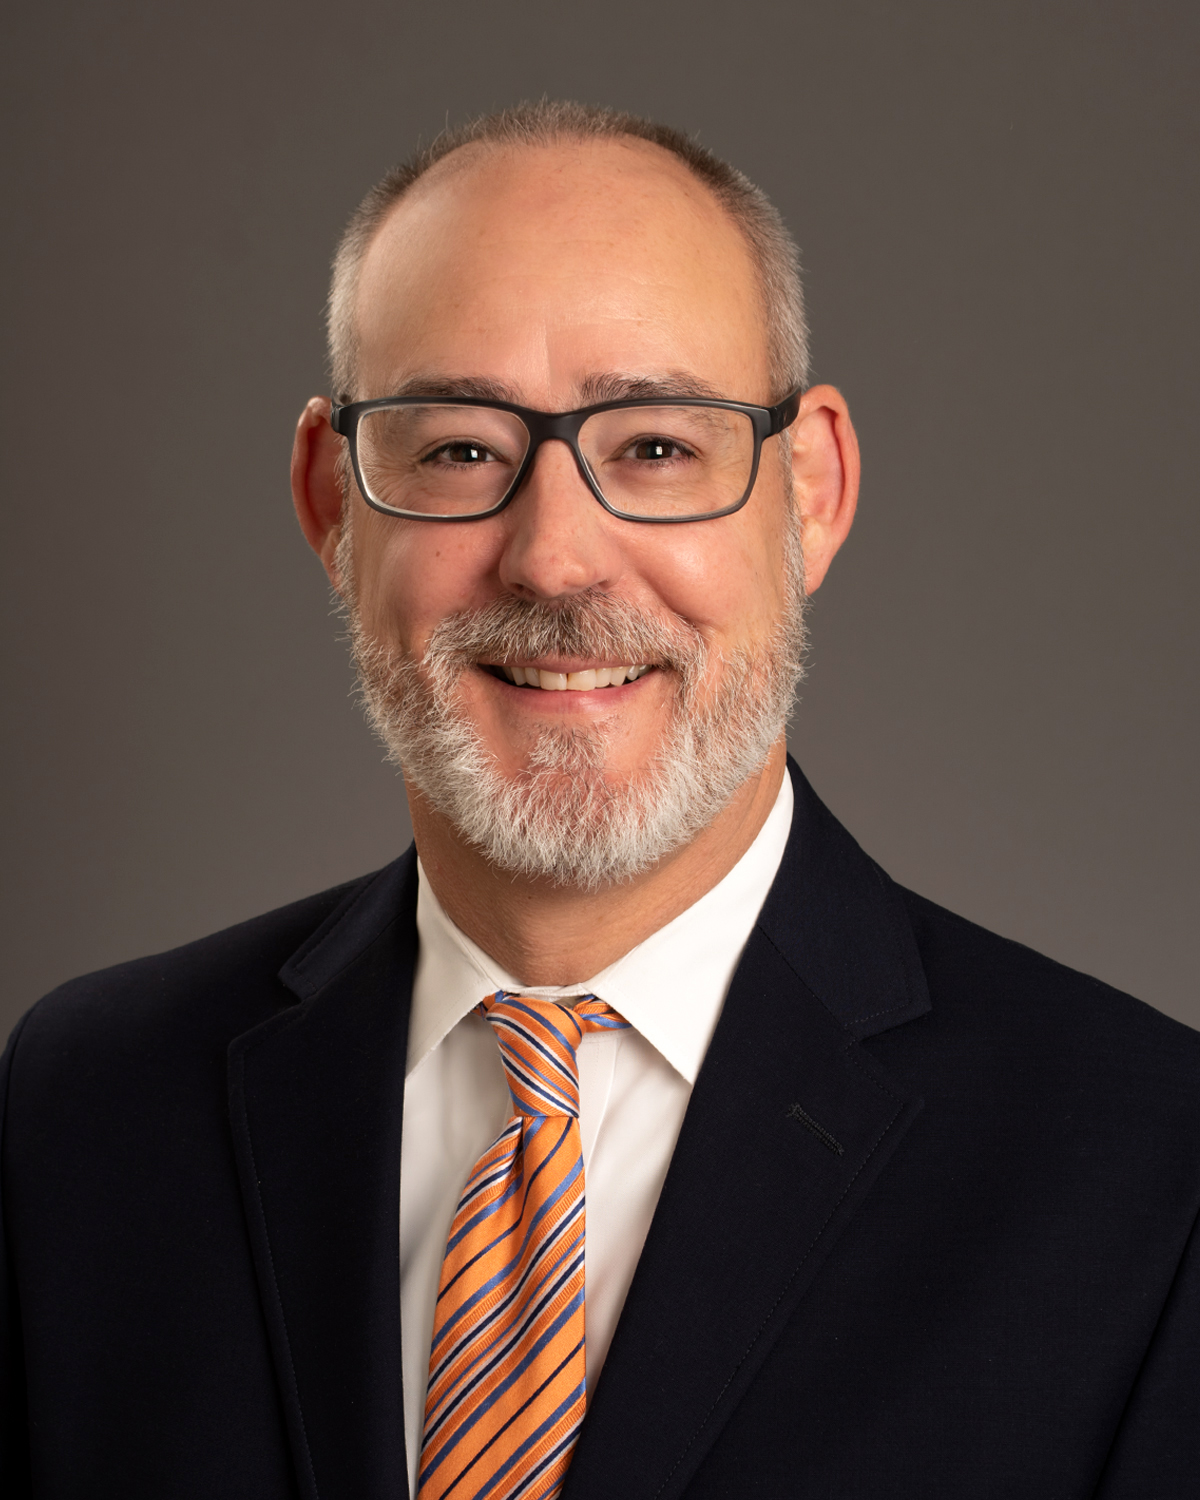 Headshot of Christian Wuthrich, Dean of Students